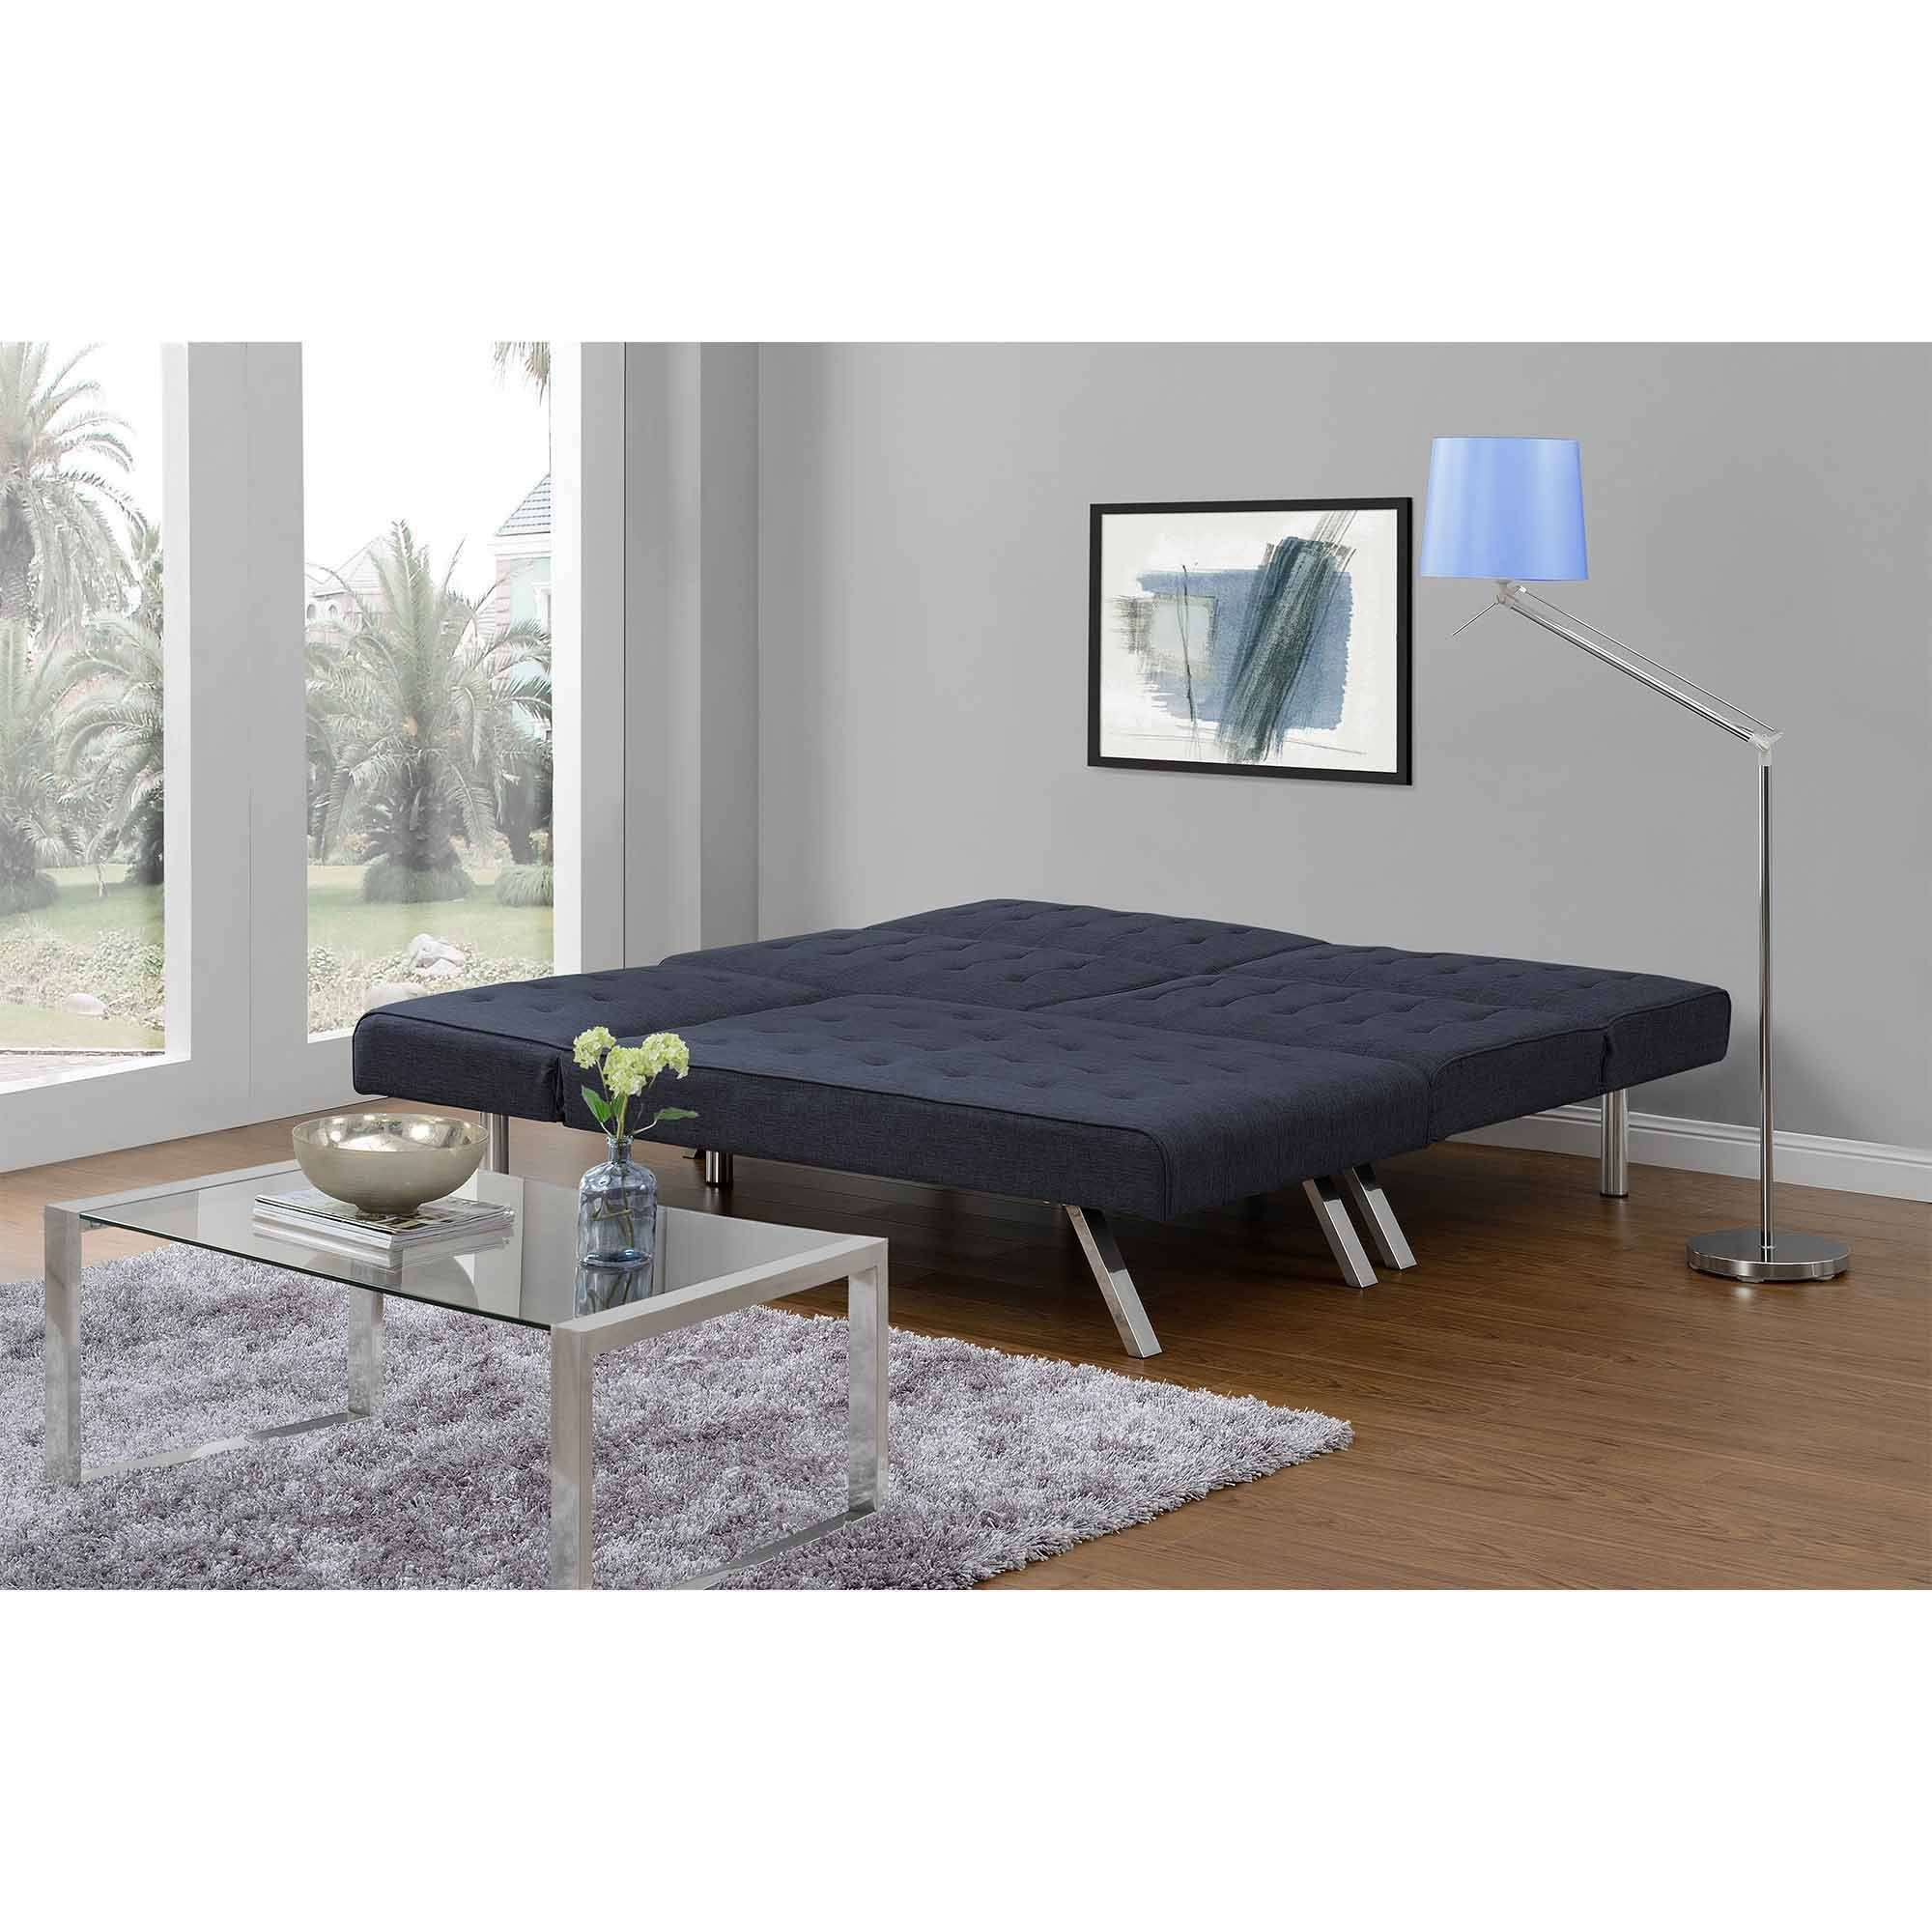 2018 Emily Chaise Lounges For Dhp Emily Futon Chaise Lounger, Multiple Colors – Walmart (View 4 of 15)